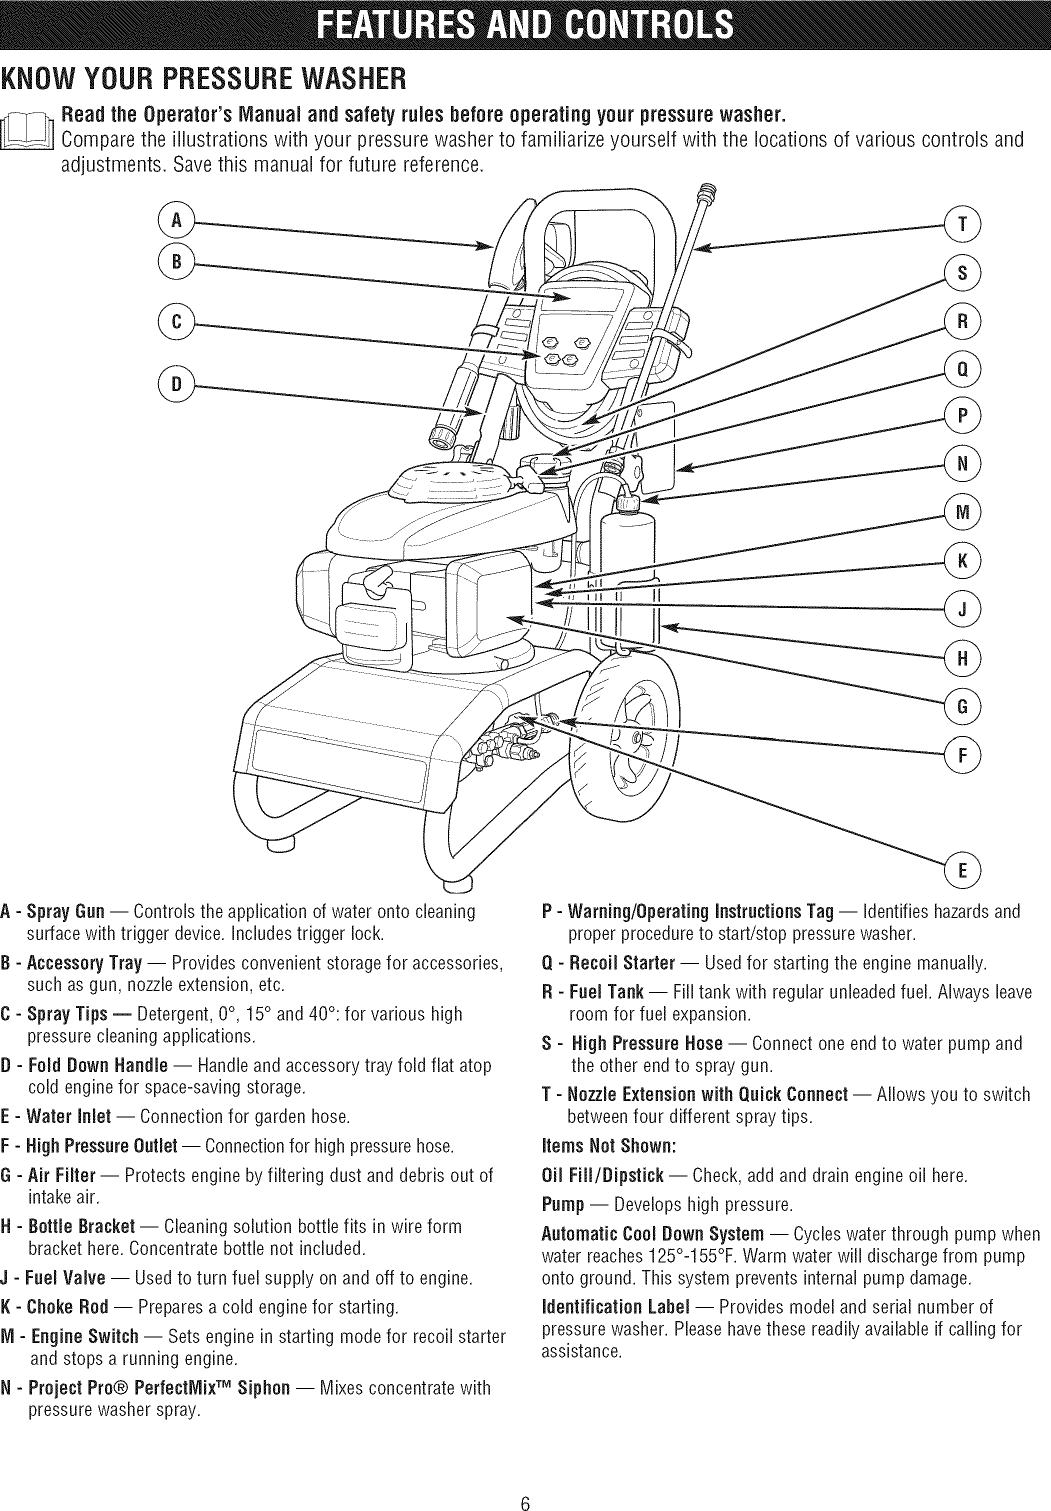 Craftsman 580752910 1112464L User Manual PRESSURE WASHER Manuals And